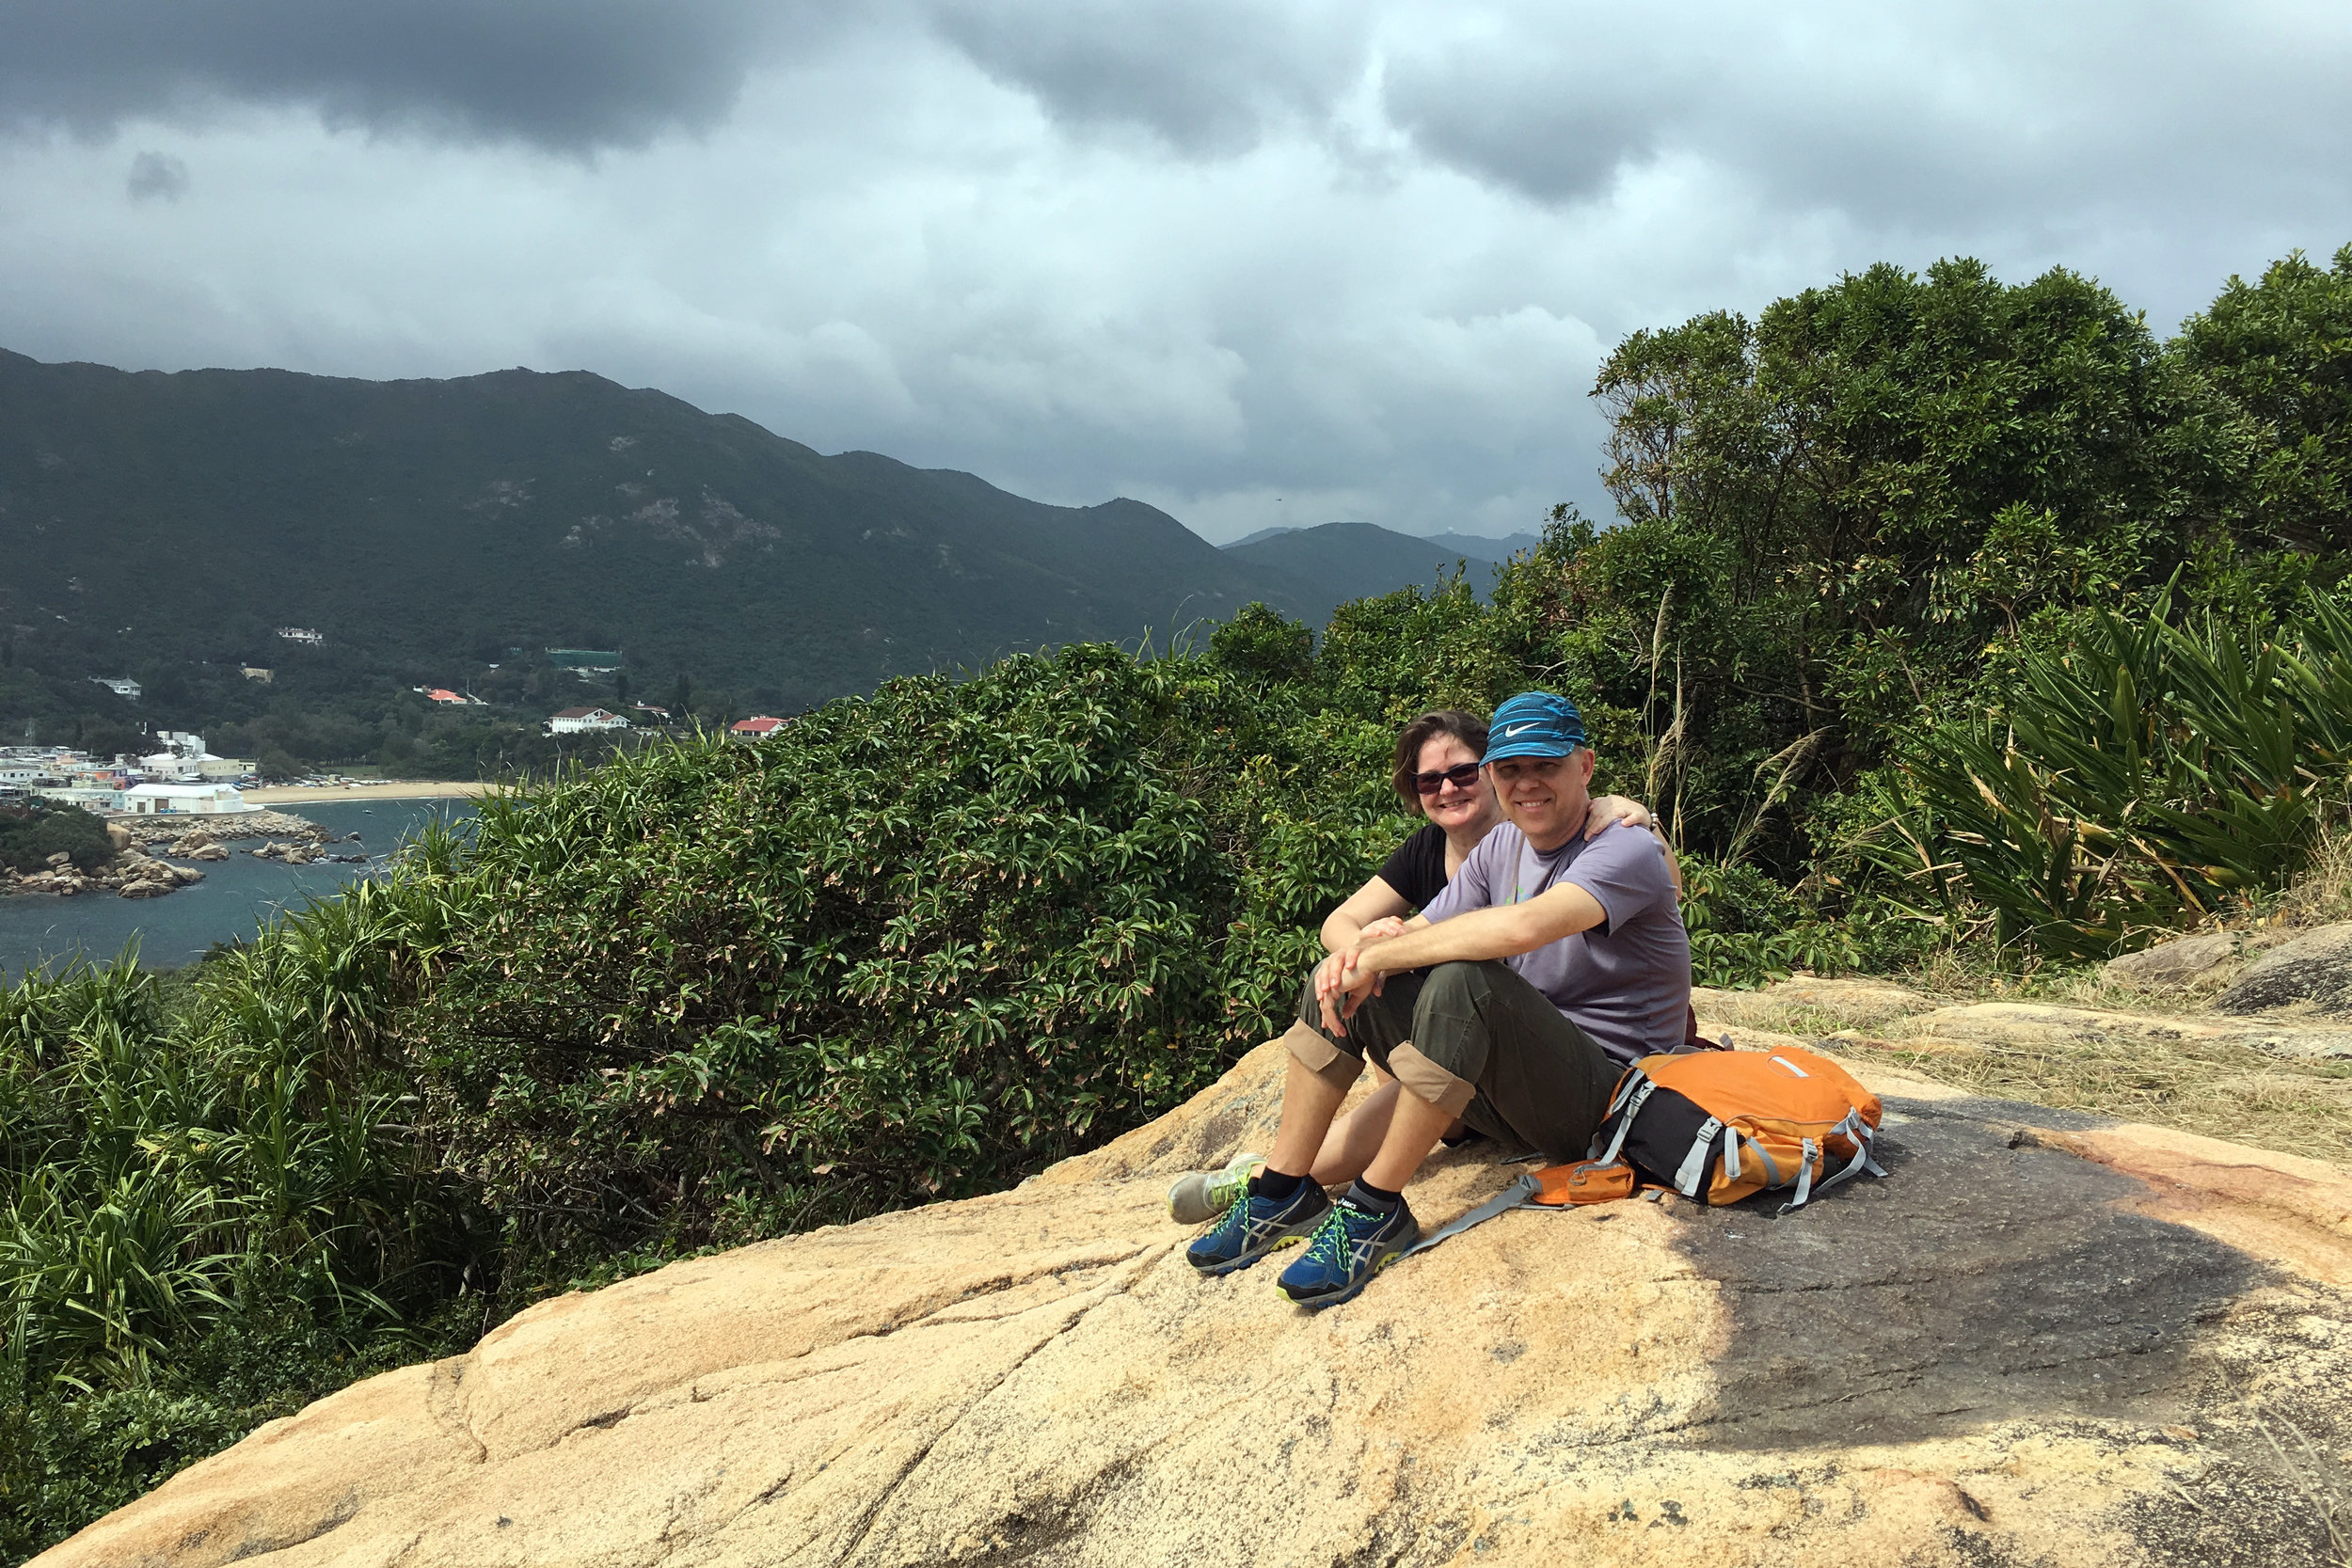 Here we are, at Prospect Point in Shek O, Hong Kong. Wondering what we are looking at? Check out the feature photo above :)